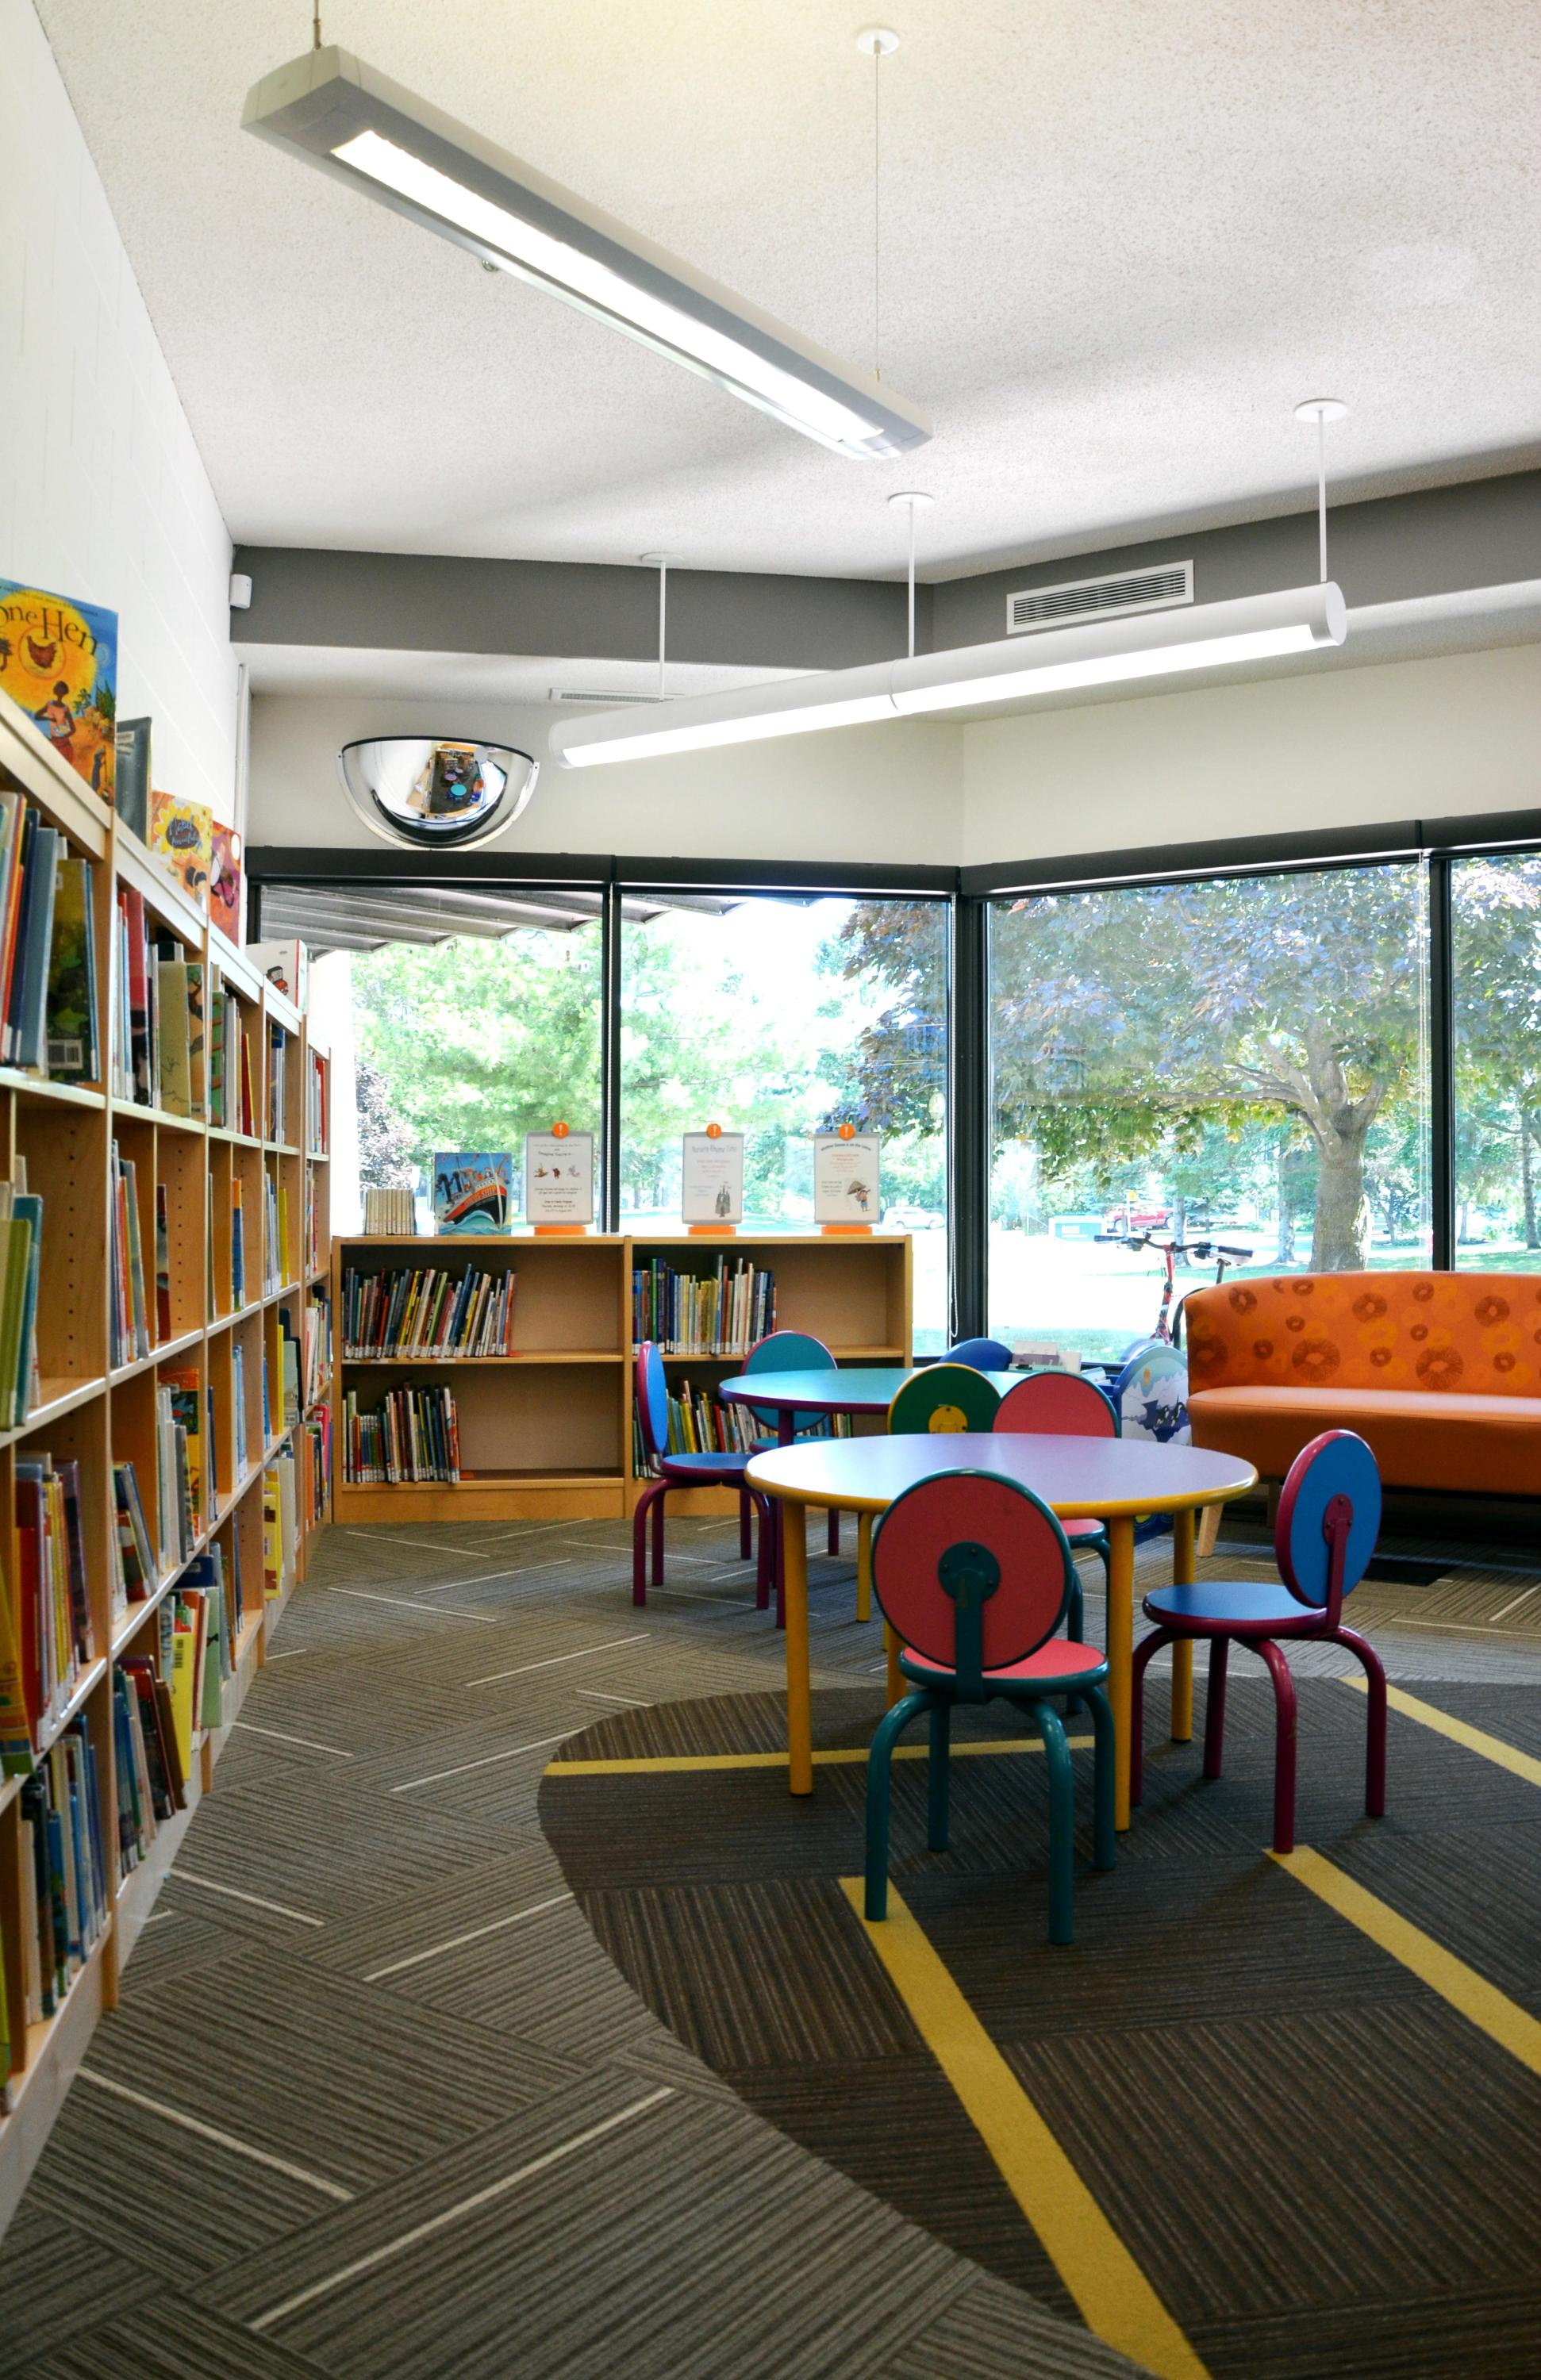 Hay Design_Hazealdean-Library-Interior-Design-kids-15